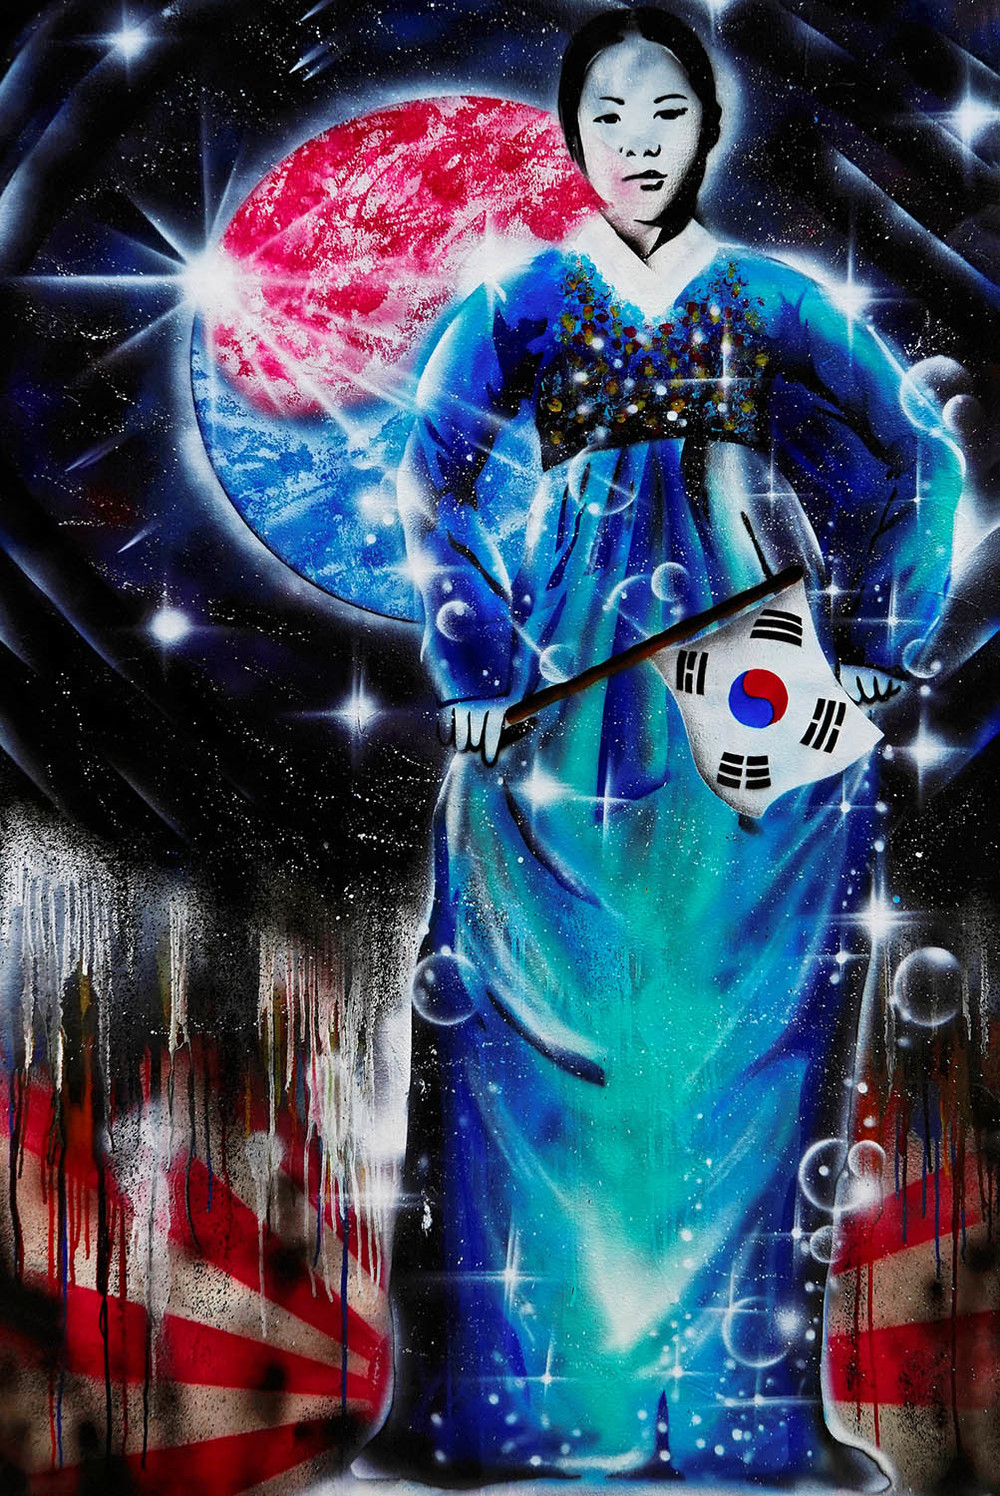 street art graffiti of a woman in a blue hanbok with a korean flag in bukchon seoul